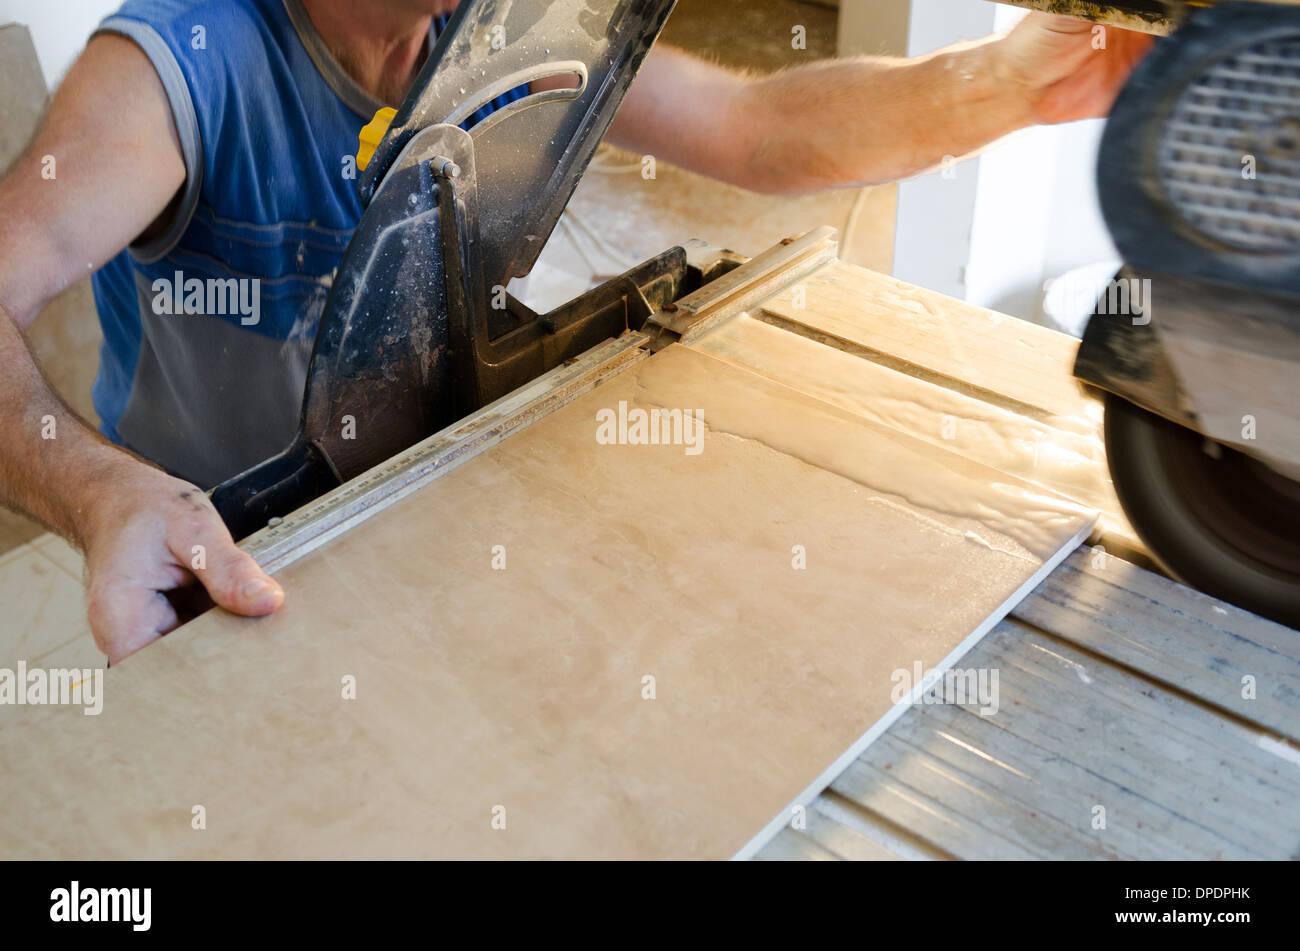 Electric Tile Cutter Stock Photos Electric Tile Cutter Stock